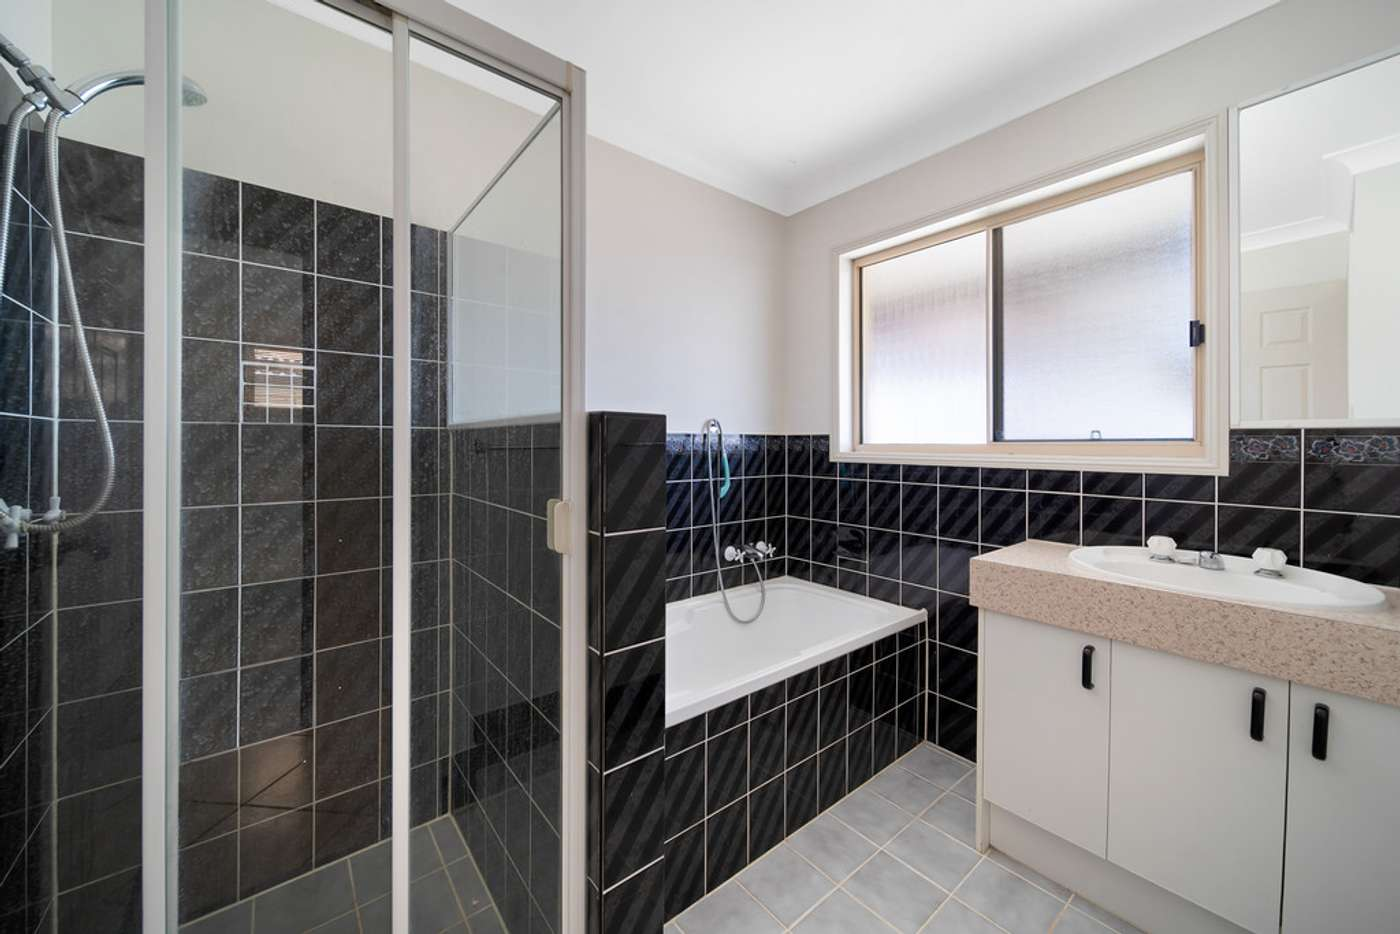 Seventh view of Homely house listing, 3 Colombard Place, Heritage Park QLD 4118